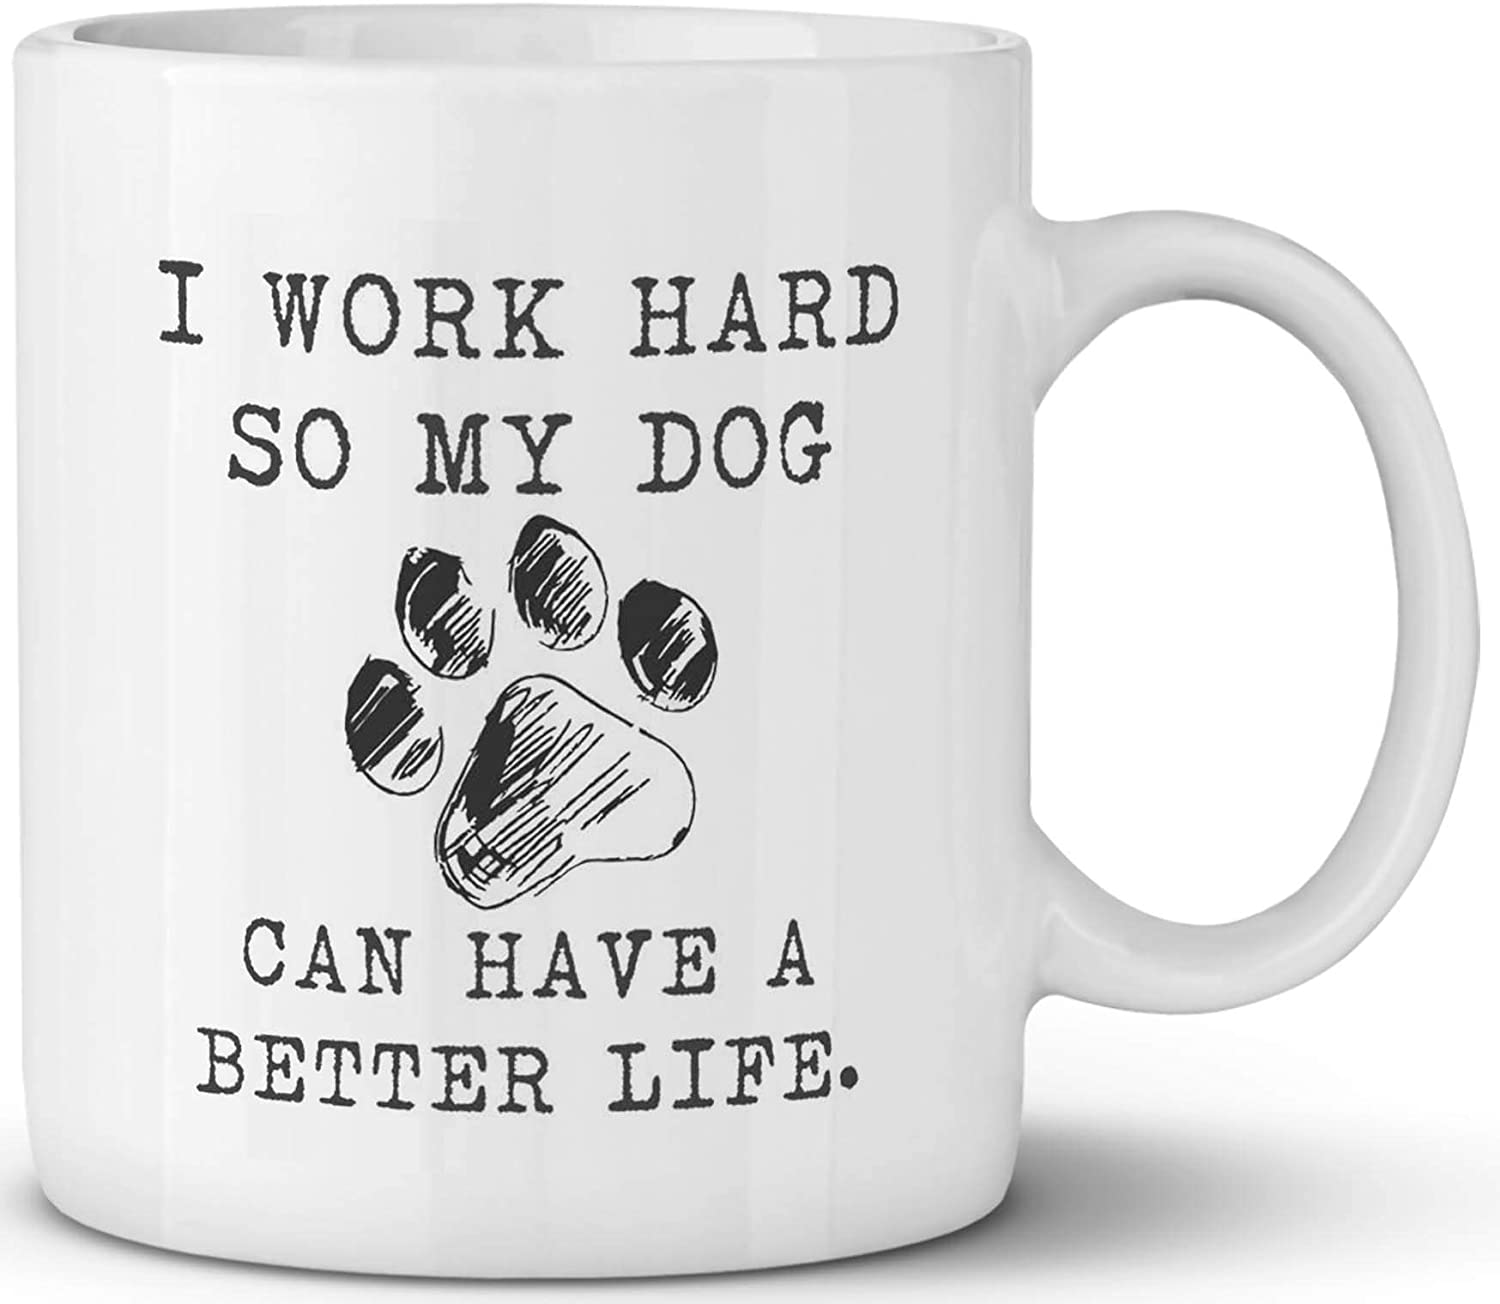 Funny Coffee Mug Best Gifts The Dog Father Top Birthday Gift for Dog Lover - Fun Cool Novelty Mug - 11oz